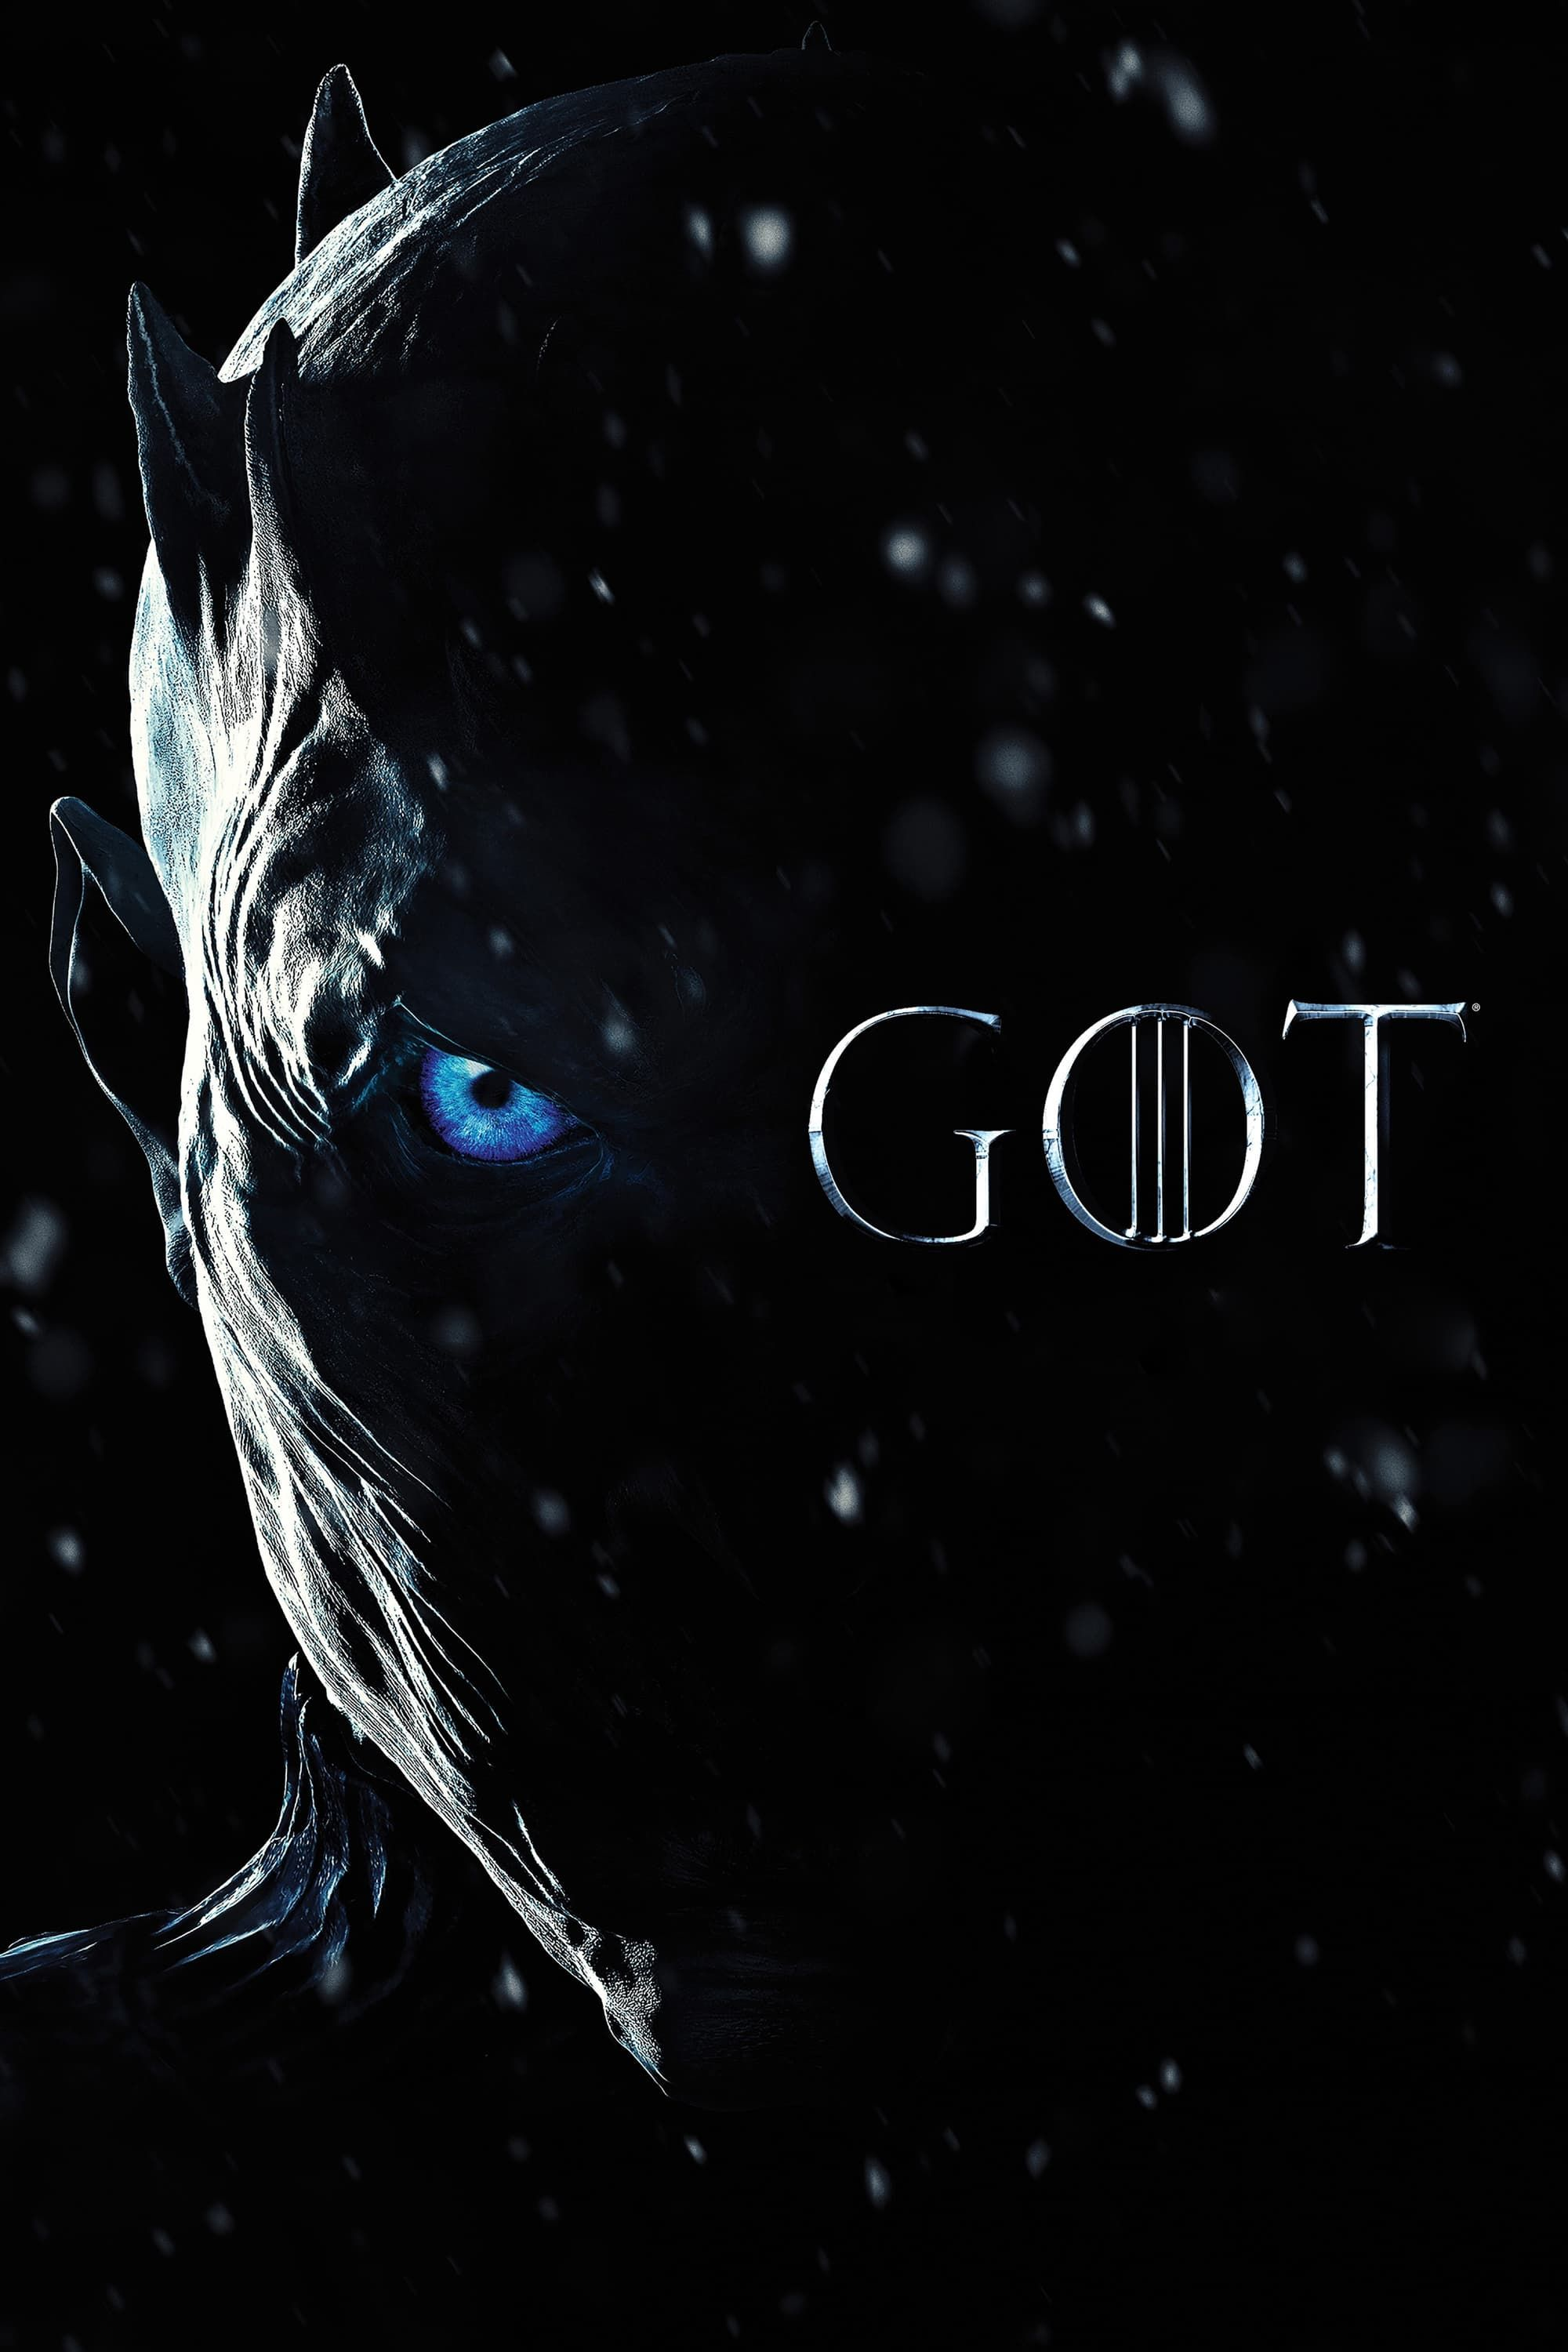 Games Of Thrones Streaming Saison 8 Episode 1 Vostfr : games, thrones, streaming, saison, episode, vostfr, Seven, Noble, Families, Fight, Control, Mythical, Westeros., Friction, Between…, Thrones, Episodes,, Watch, Thrones,, Online